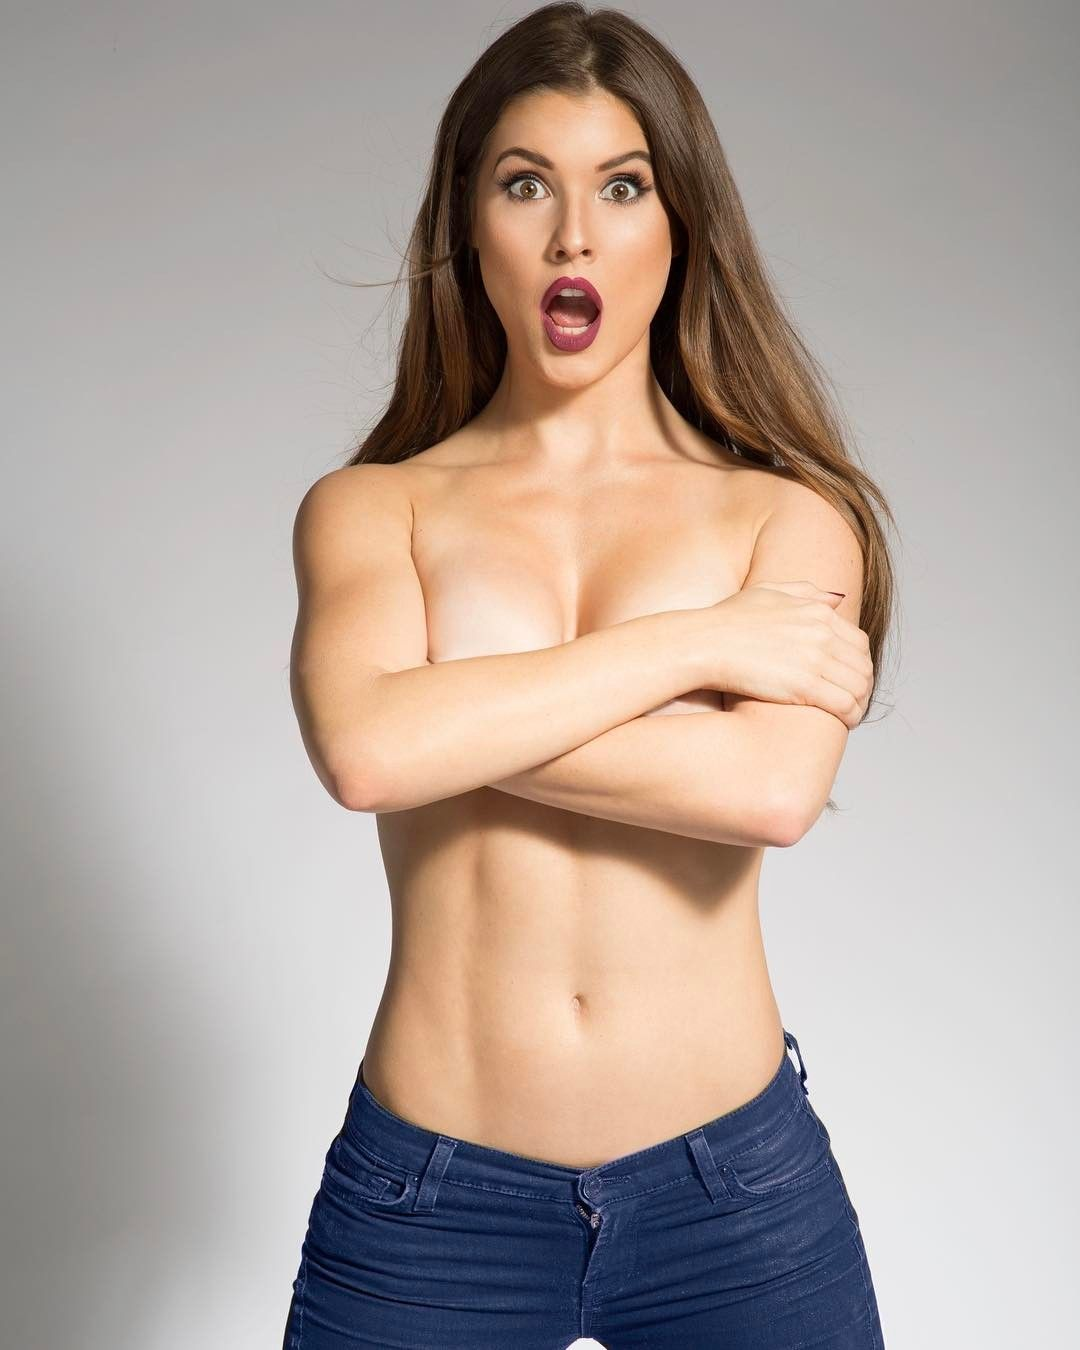 Amanda Cerny The Self Proclaimed Queen Of Snapchat Videos Pictures Gifs Eye Candies On Social